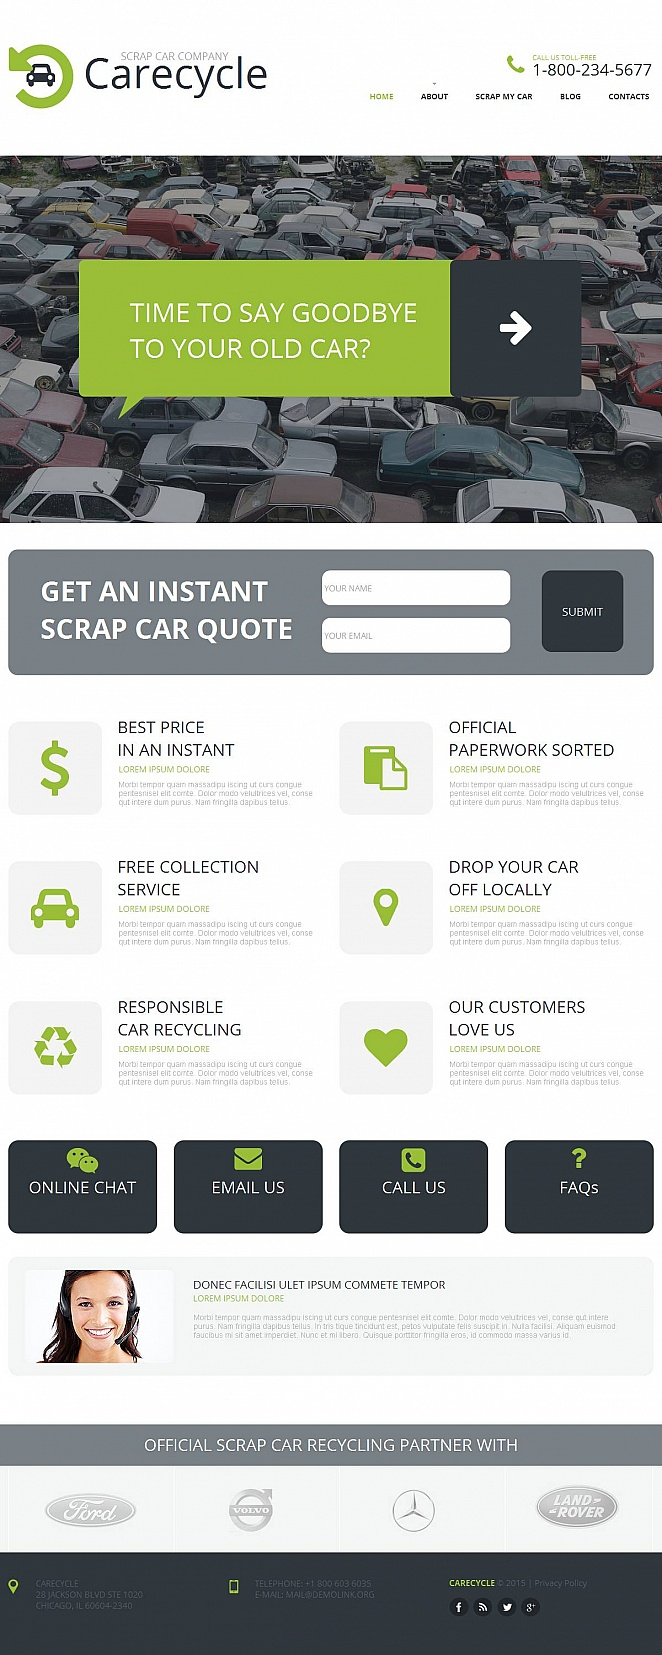 Car Scrap Website Template with Flat Design - image